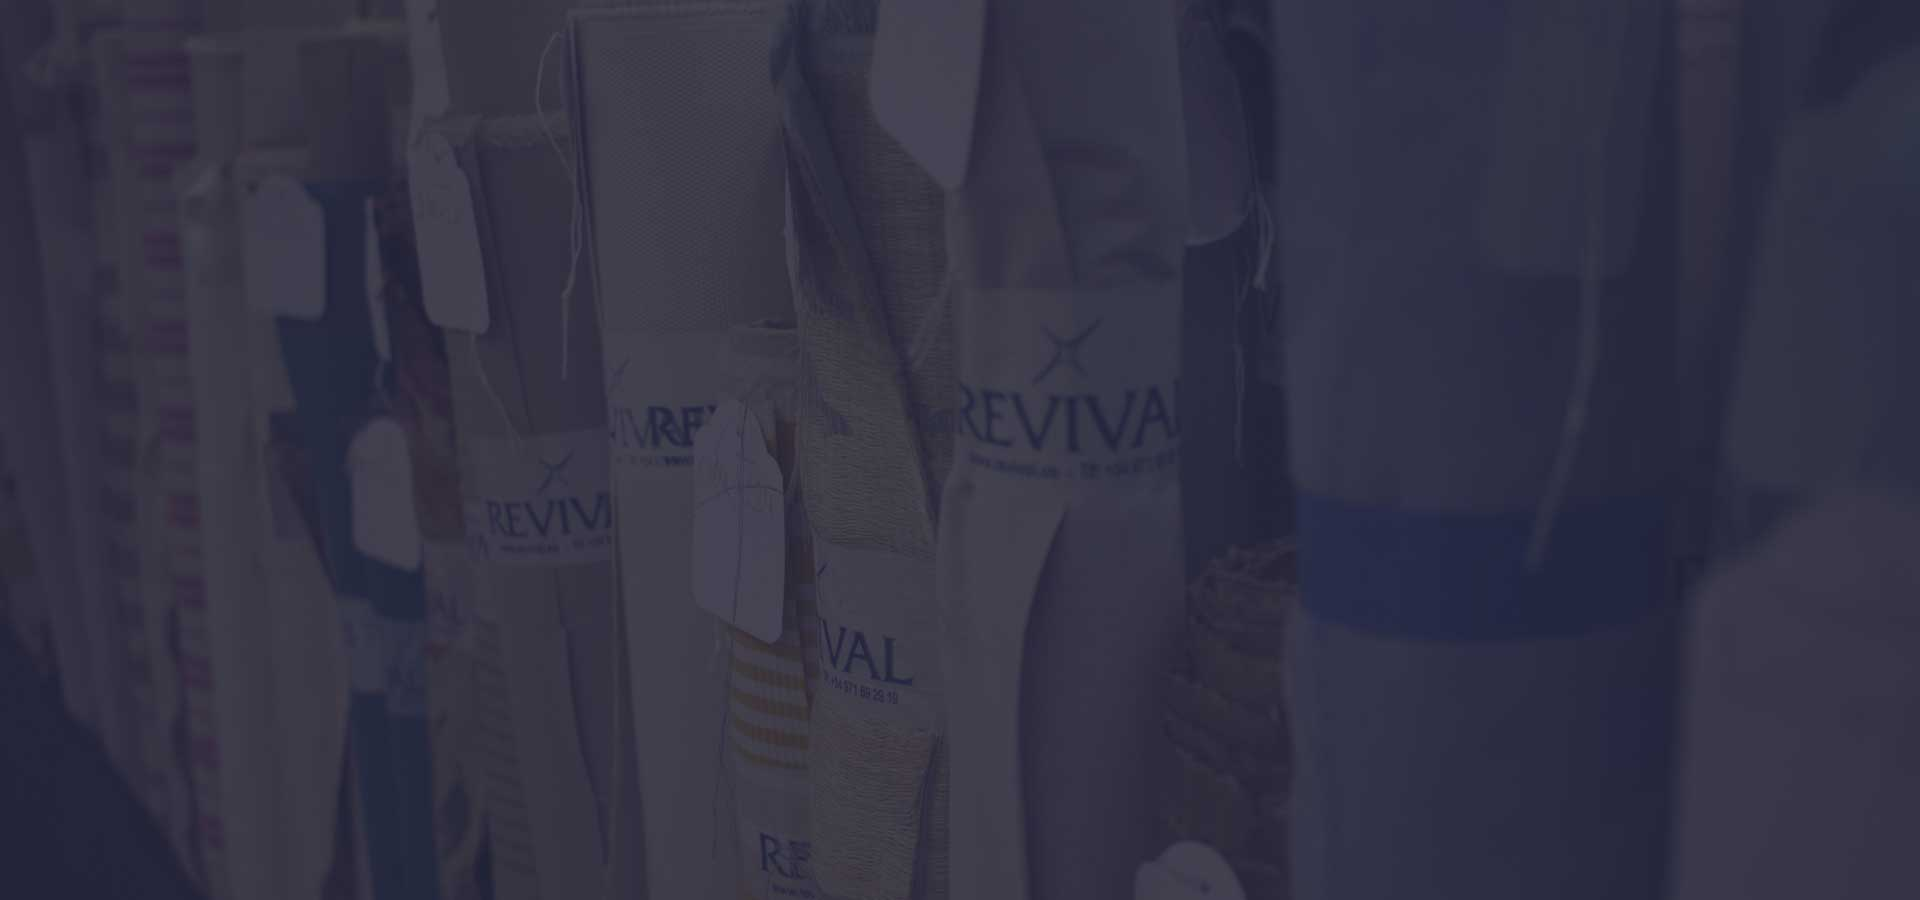 Revival - Superyacht refit and marine specialists in Mallorca